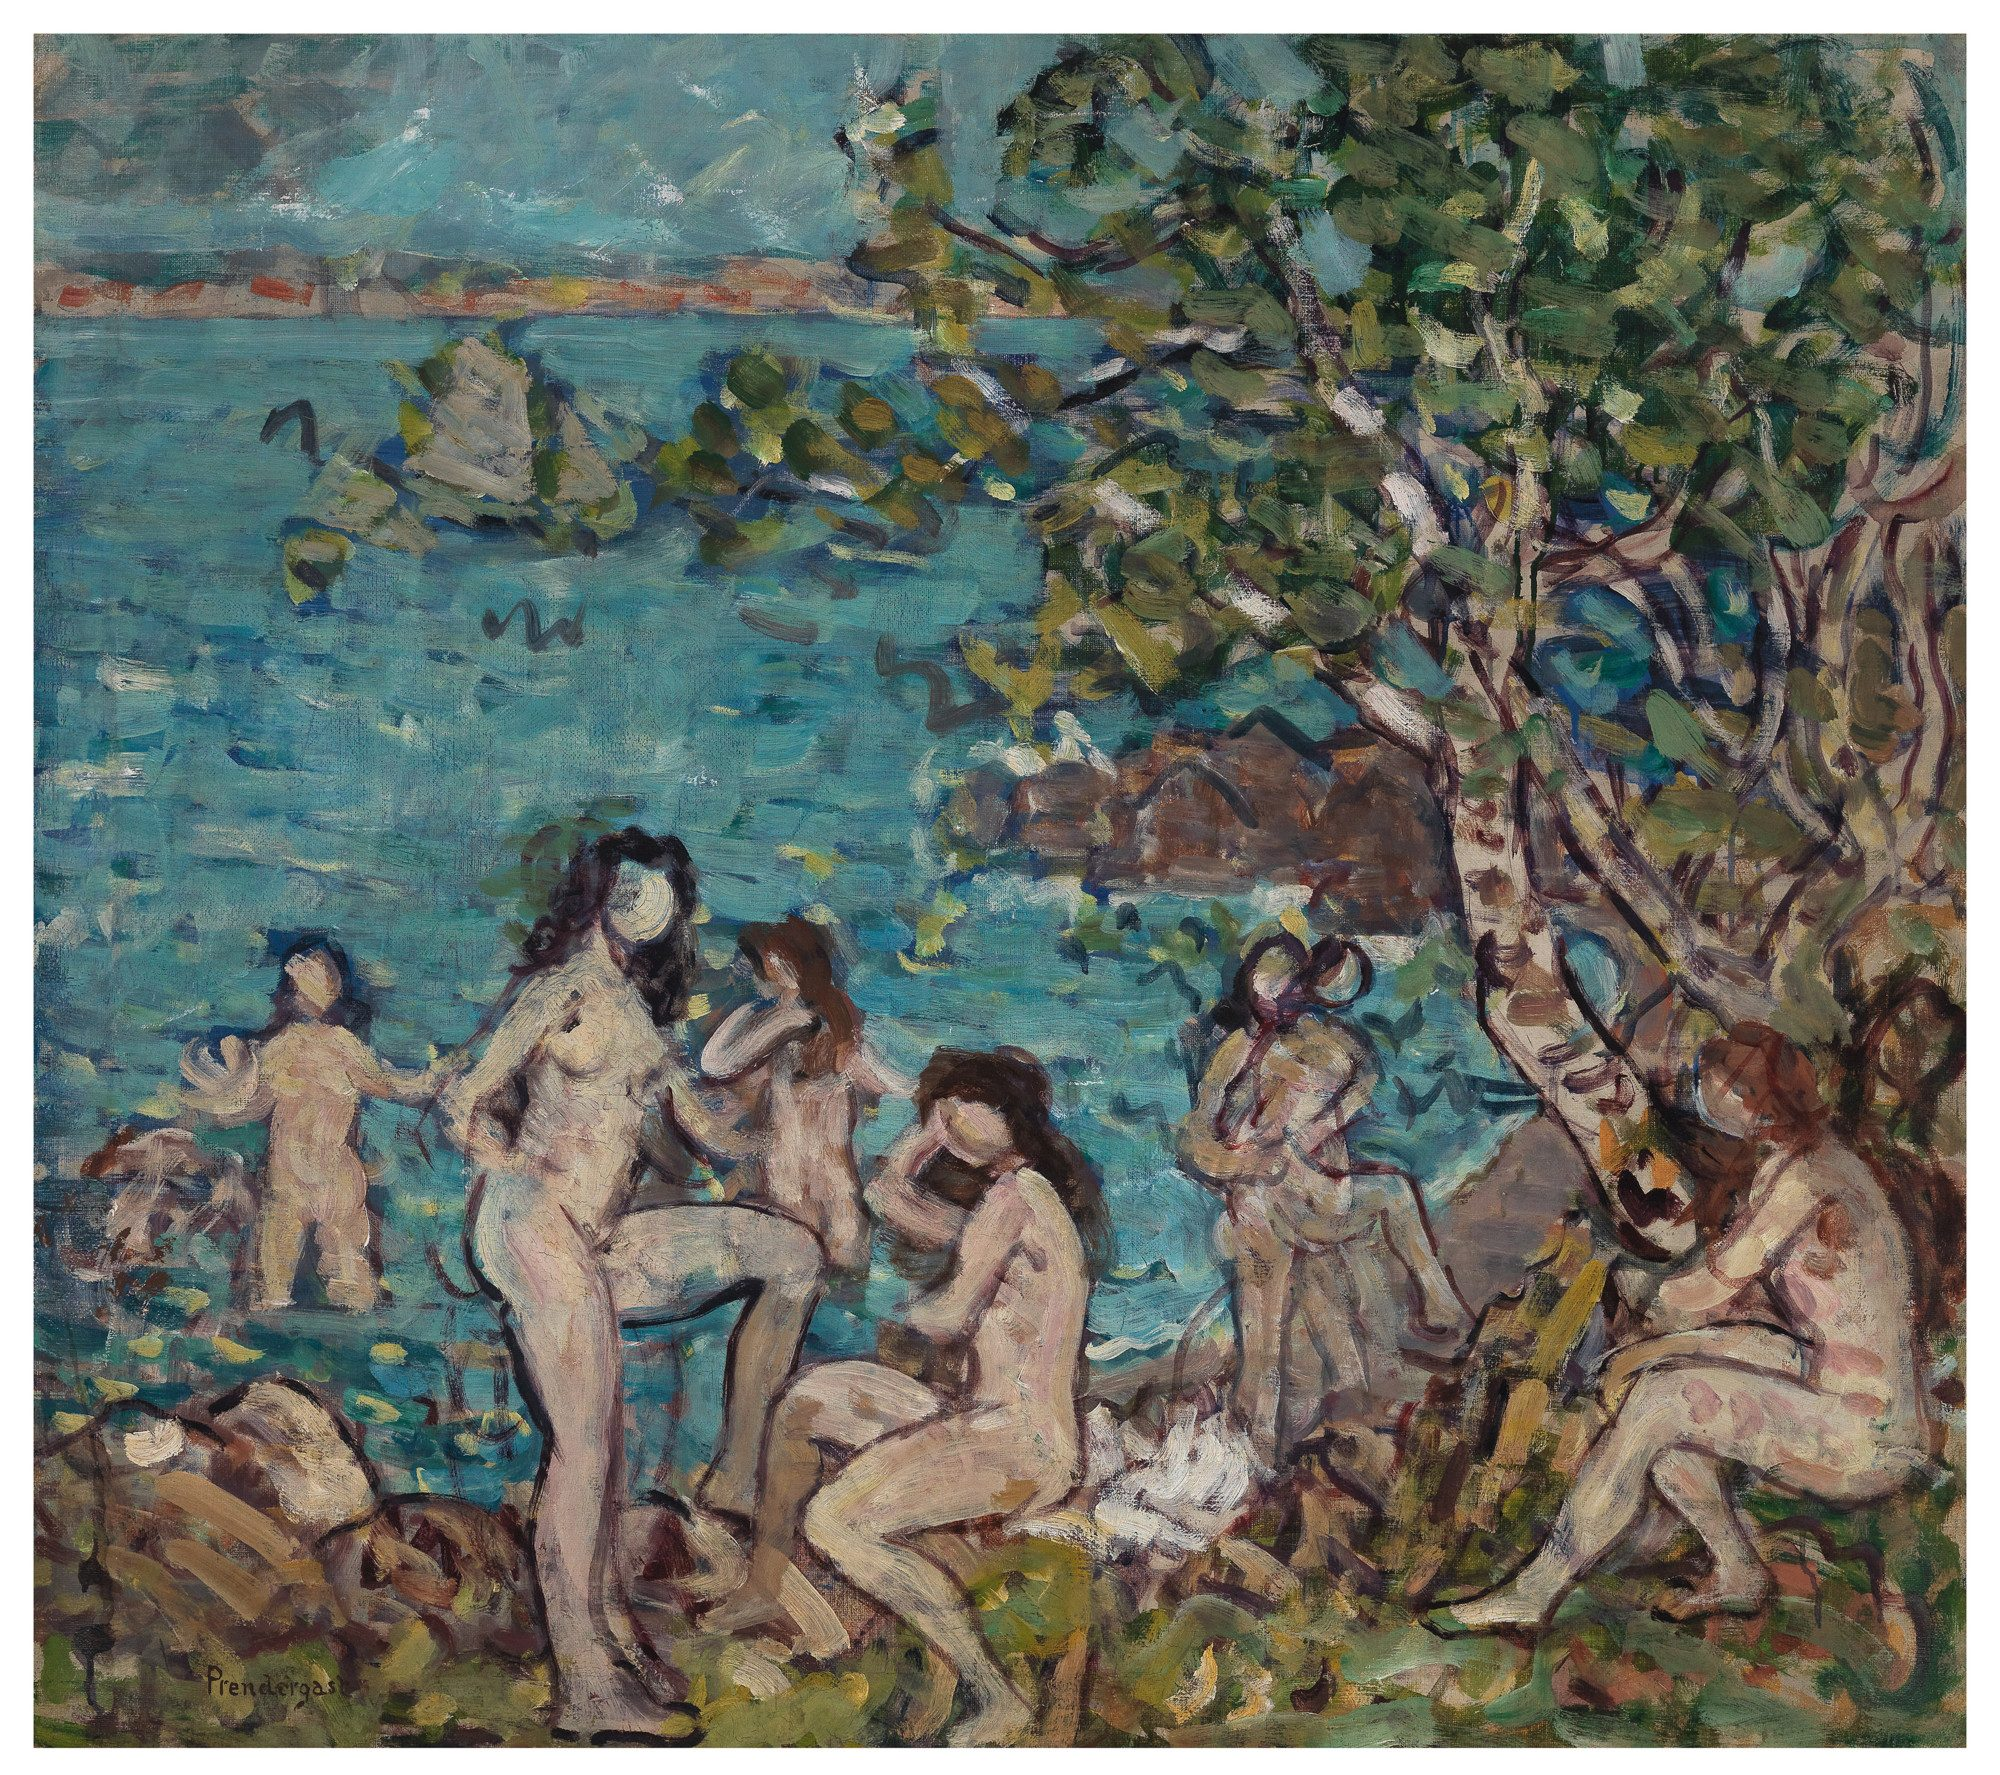 Maurice Brazil Prendergast (American, 1858-1924), Bathers by the Sea, ca. 1910-1913. Oil on canvas, 31 x 35 1/8 in. Gift of Mrs. Charles Prendergast. (83.20.1)